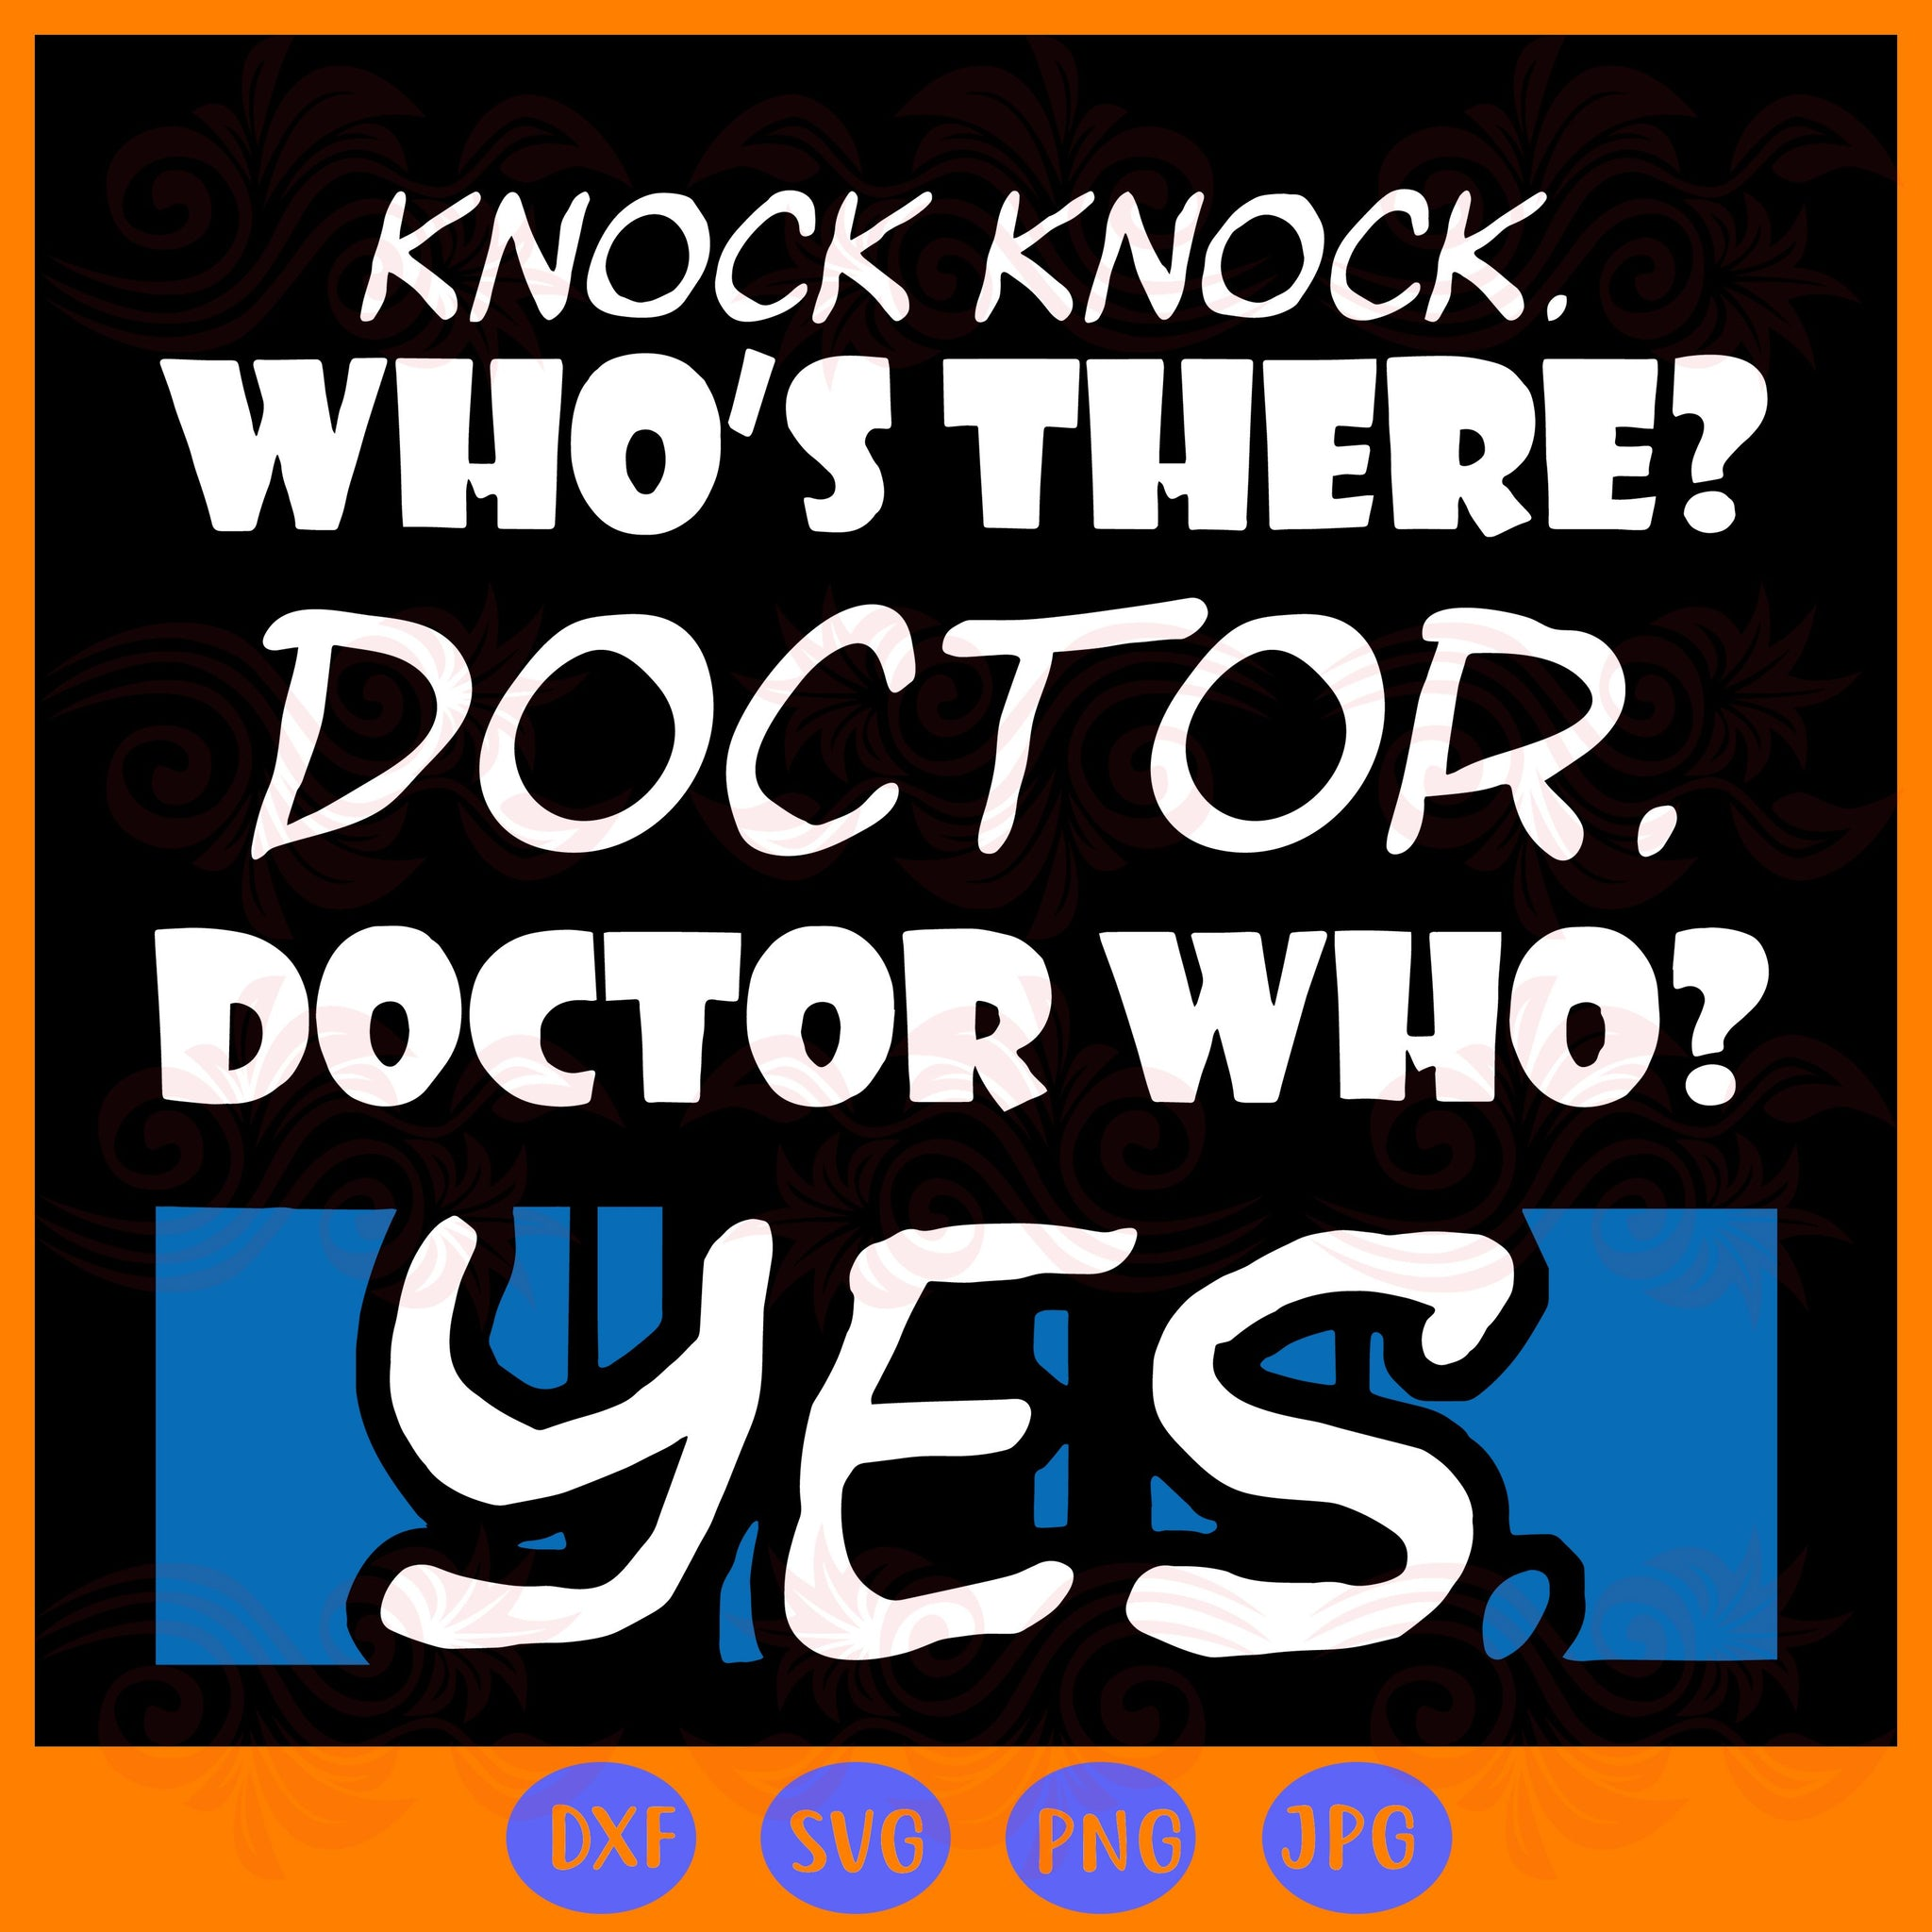 Knock knock who's there doctor who , doctor svg, doctor gifts, funny doctor, funny knock, doctor who, gift for doctor, the doctor, doctor who gifts,trending svg, Files For Silhouette, Files For Cricut, SVG, DXF, EPS, PNG, Instant Download